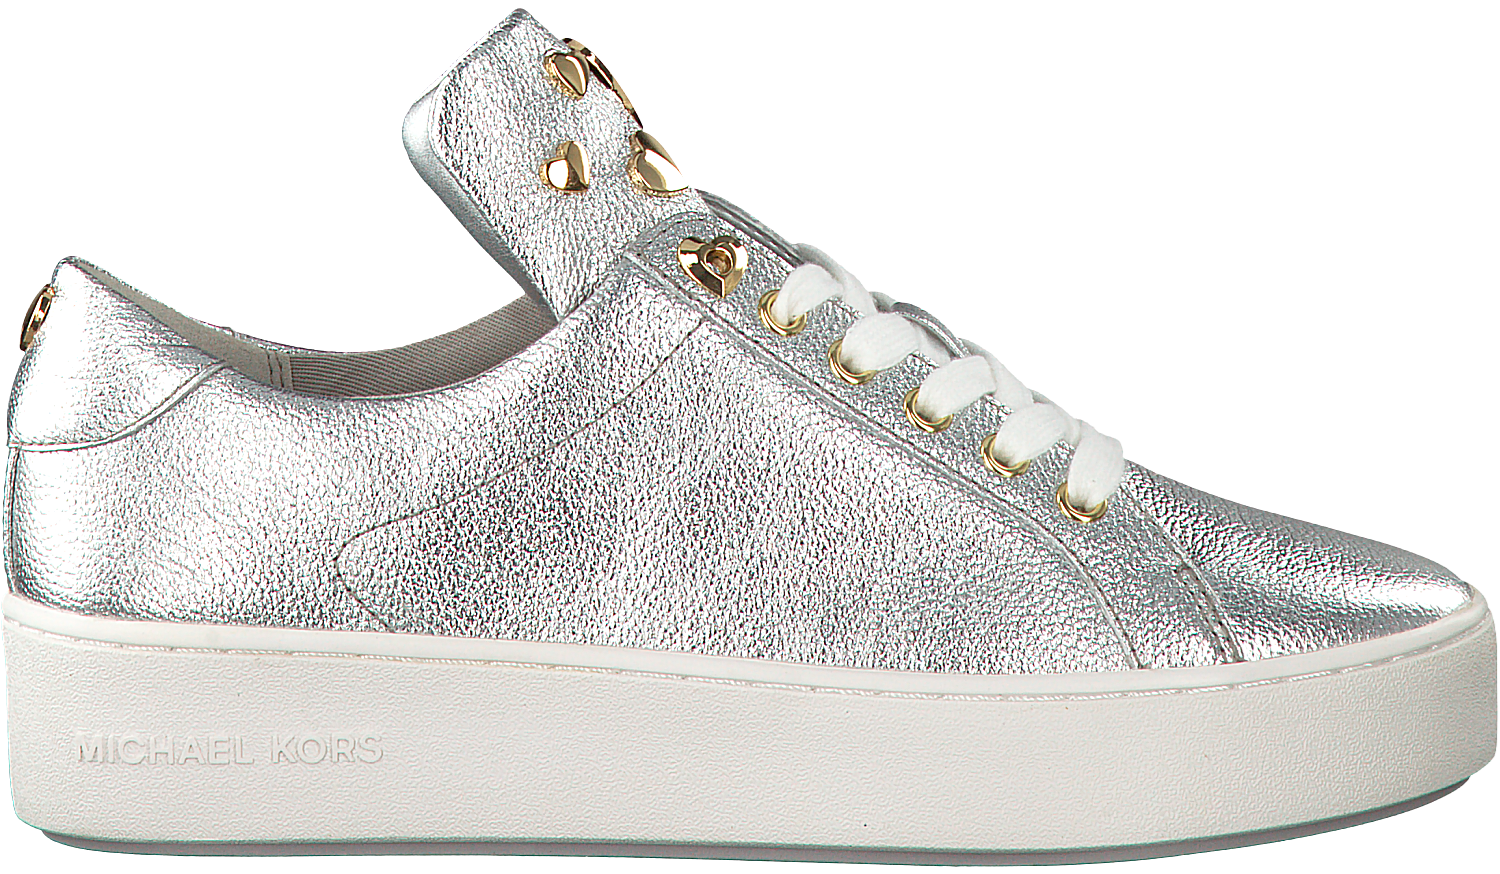 4a0599e1bac Zilveren MICHAEL KORS Sneakers MINDY LACE UP - Omoda.nl